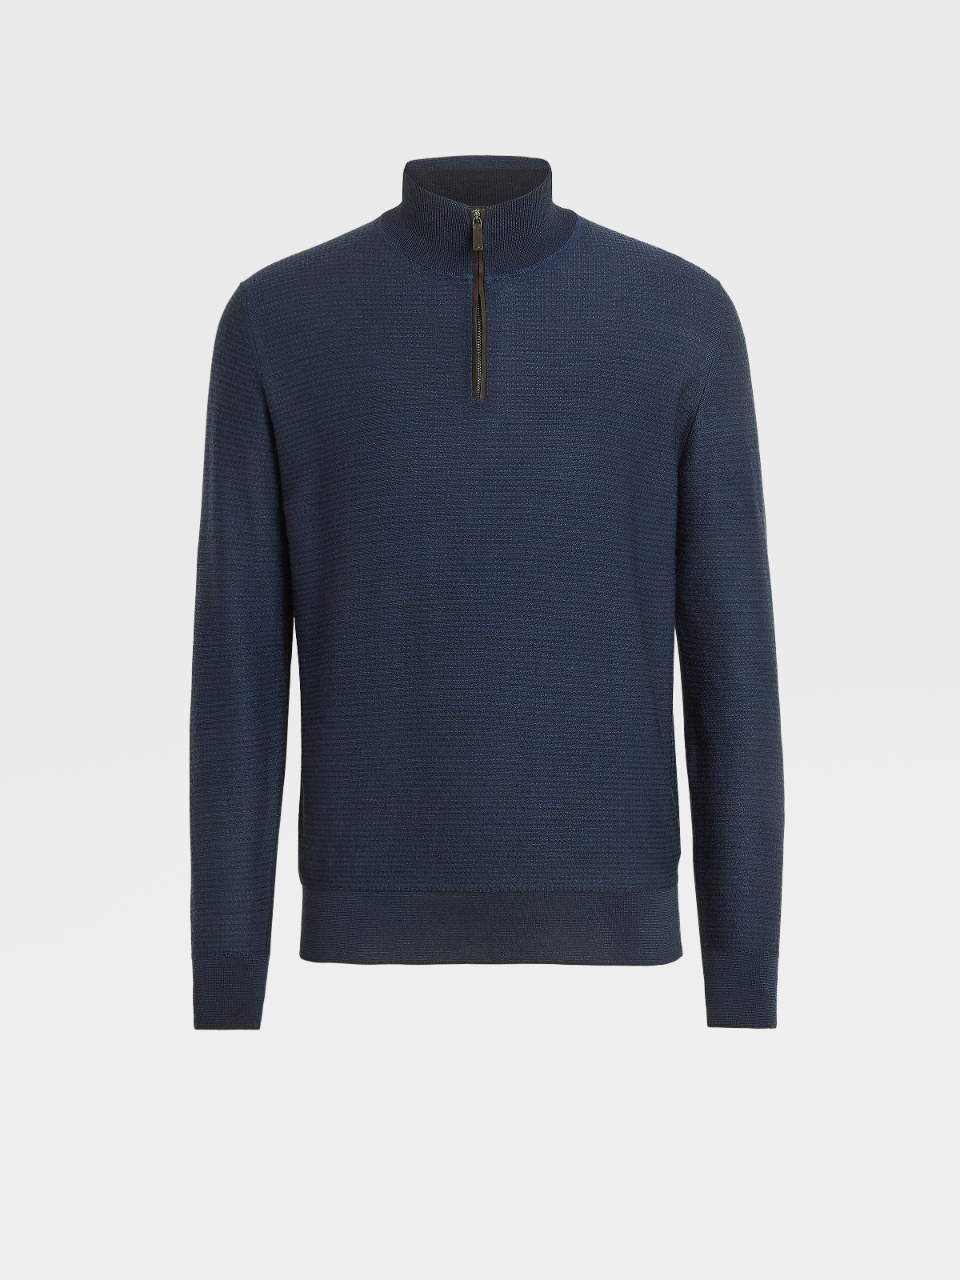 High Performance Wool Knit Turtleneck